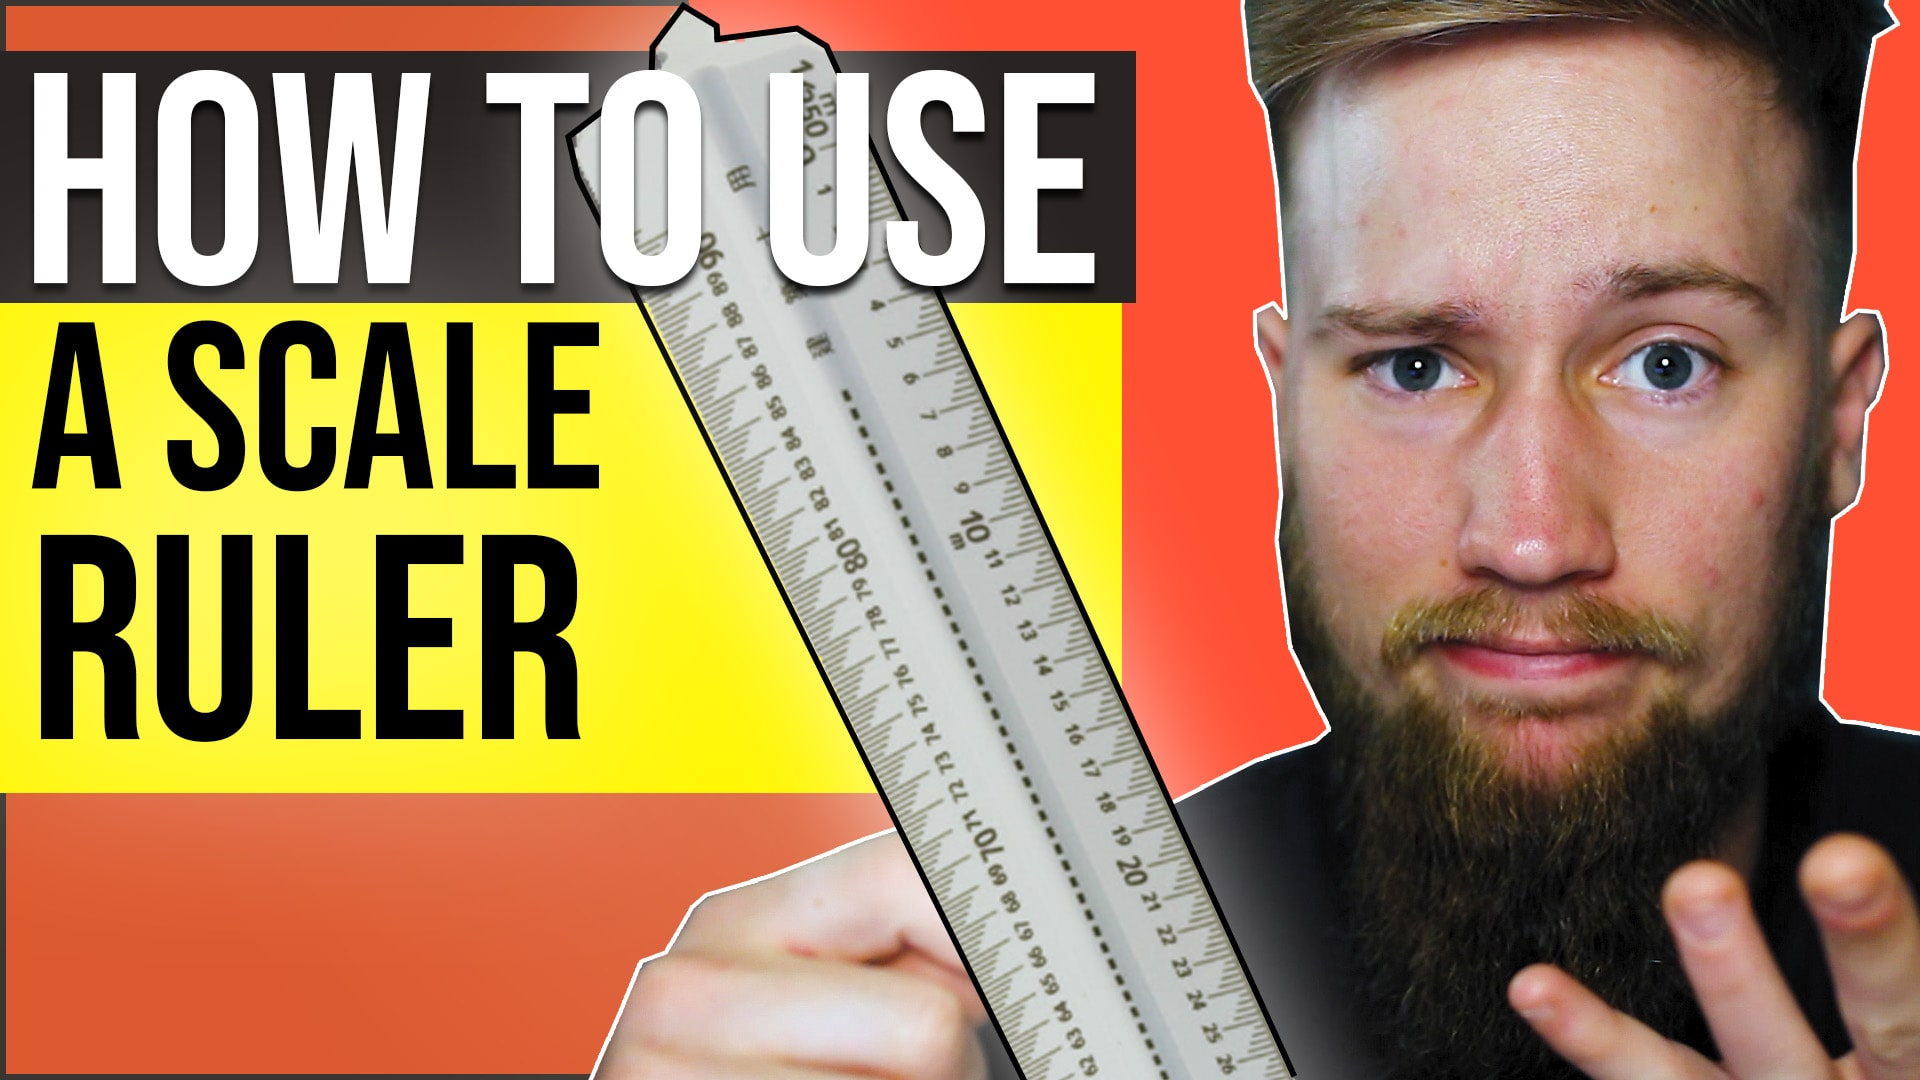 How to use a scale ruler to read and draw architecture and engineering scaled drawings